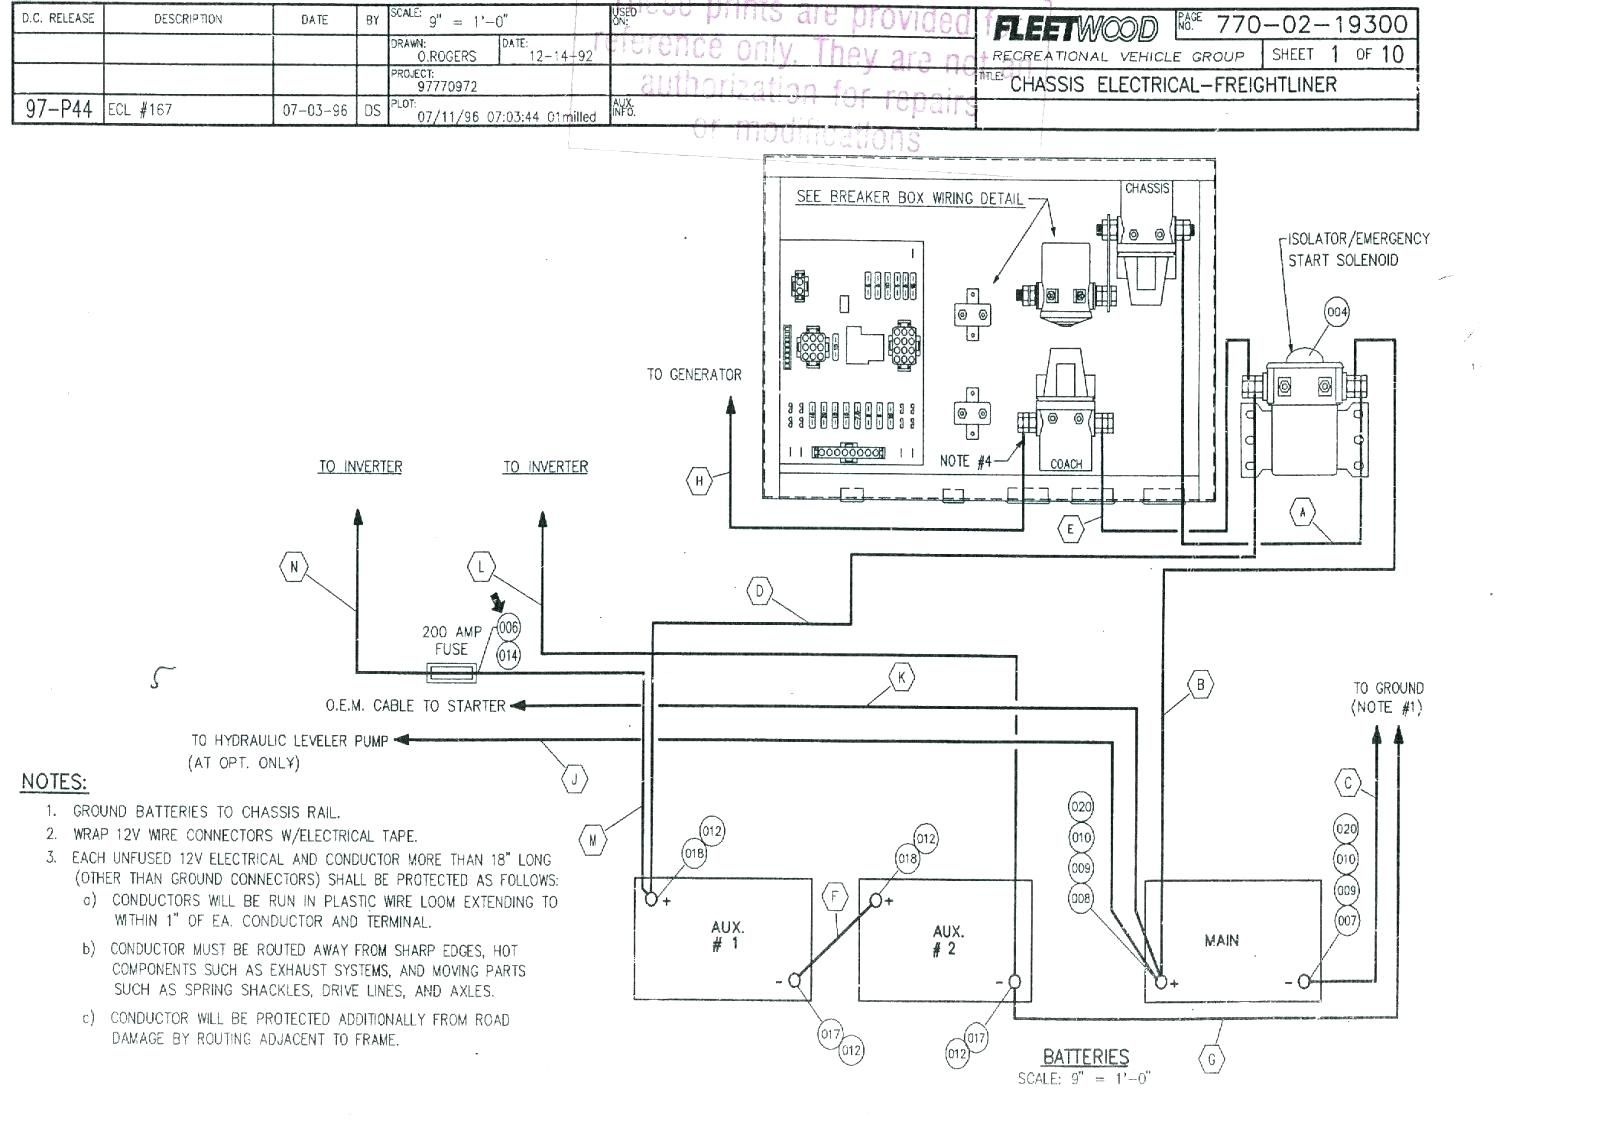 small resolution of 1984 airstream wiring diagram wiring diagramwinnebago wiring diagram pictures wiring diagram wiring diagramwinnebago wiring diagram pictures